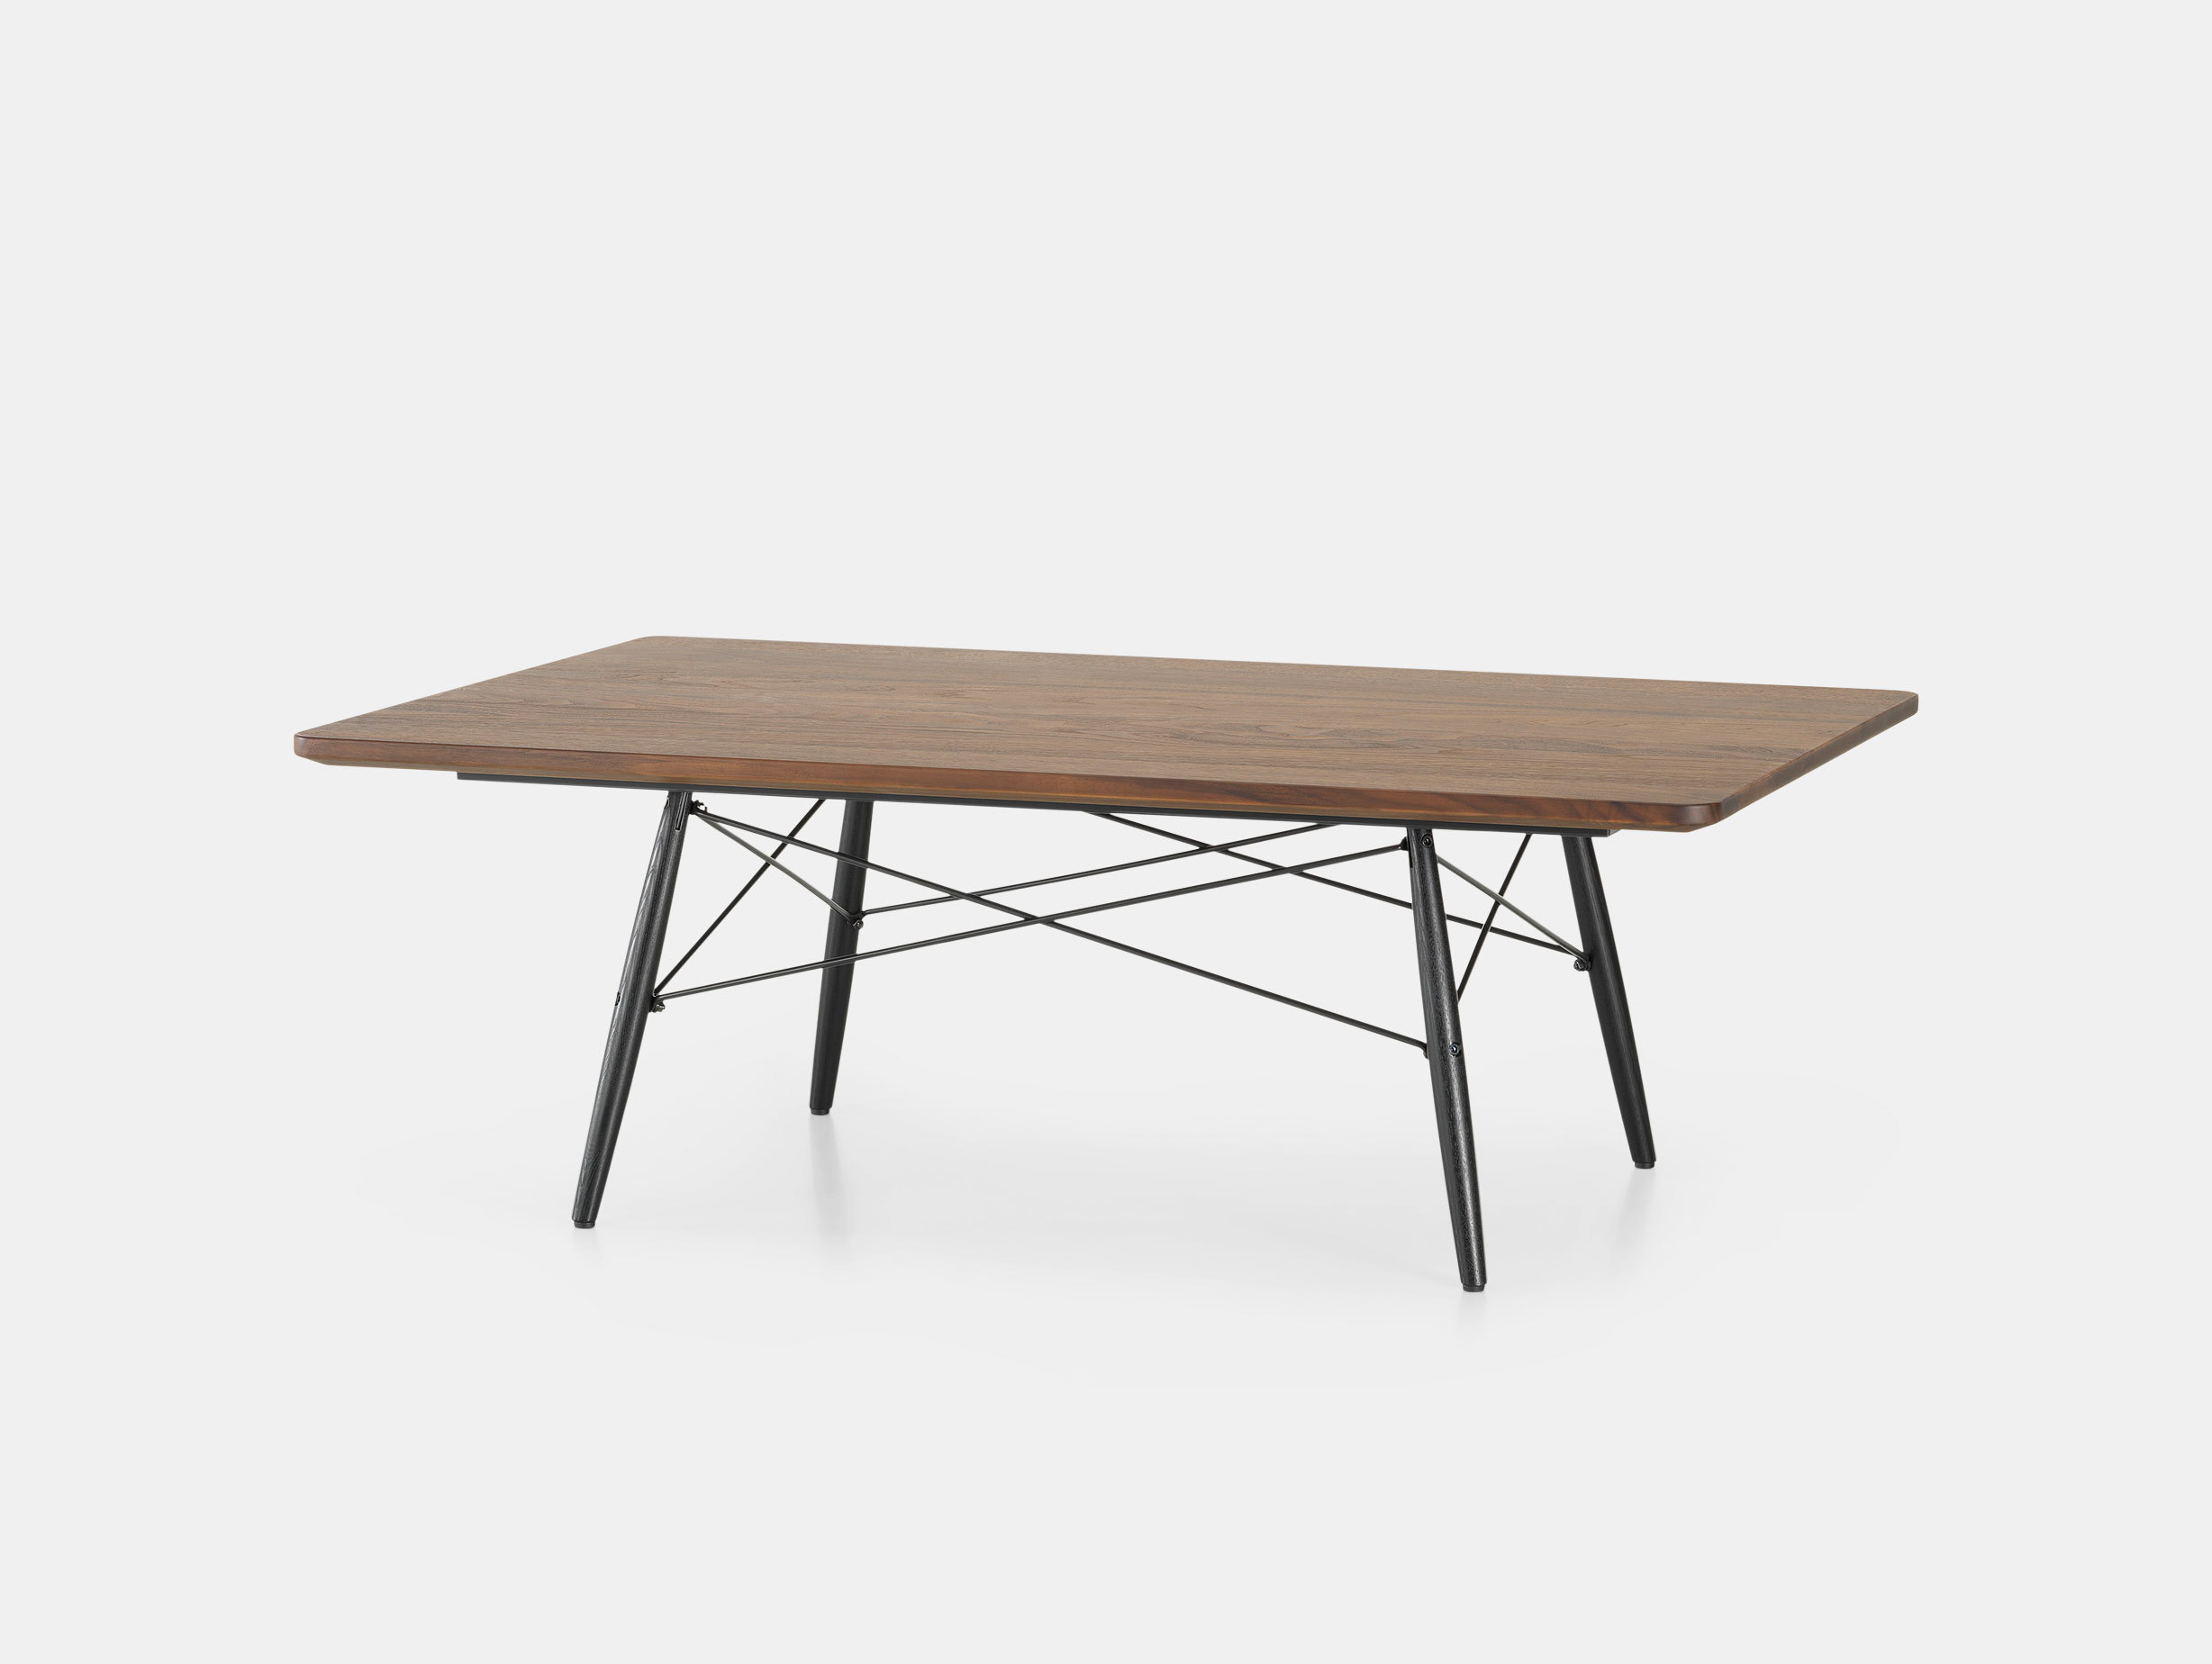 Eames Coffee Table image 1